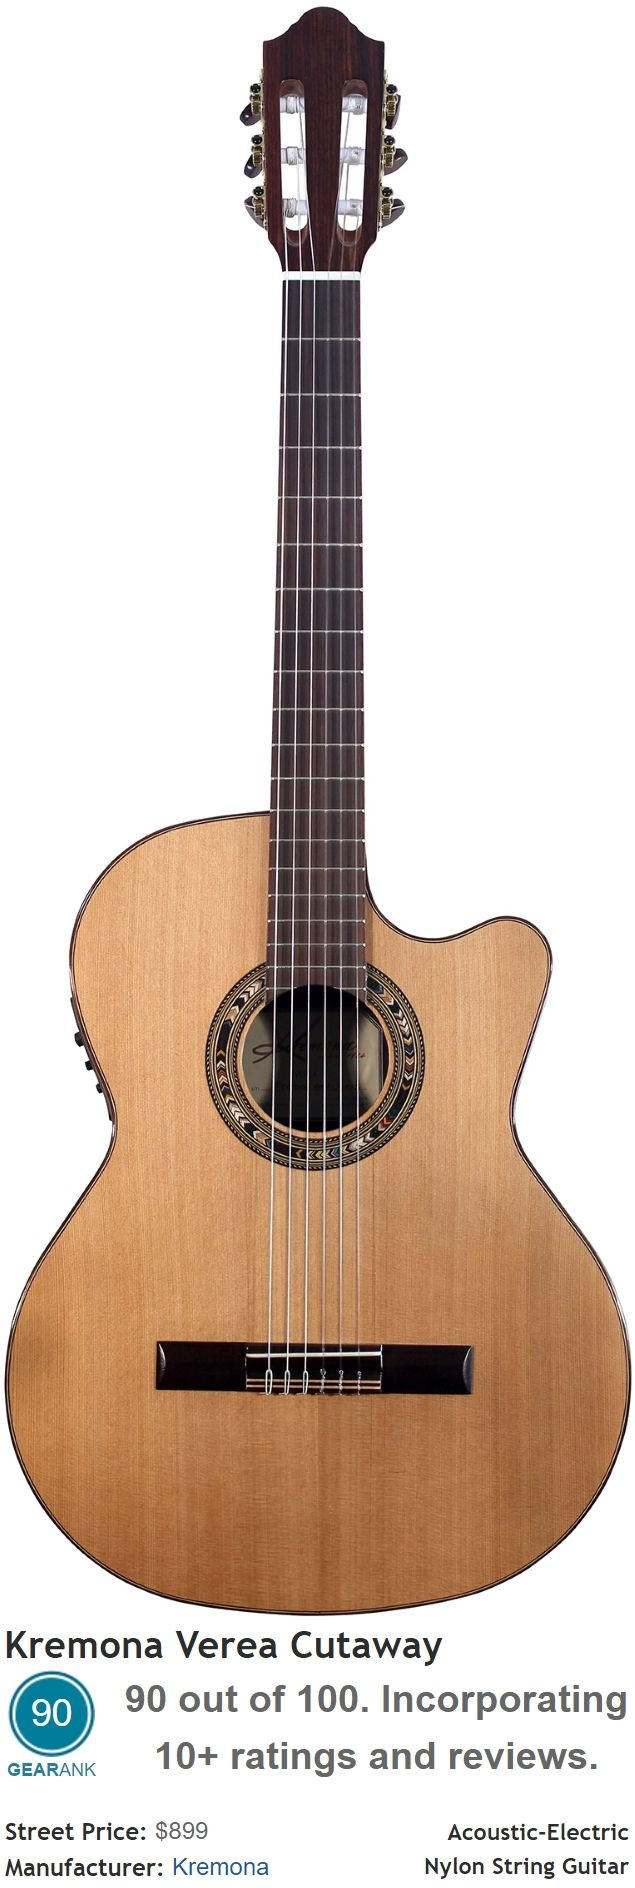 the kremona verea cutaway acoustic electric nylon string guitar is the equal 4th highest rated. Black Bedroom Furniture Sets. Home Design Ideas